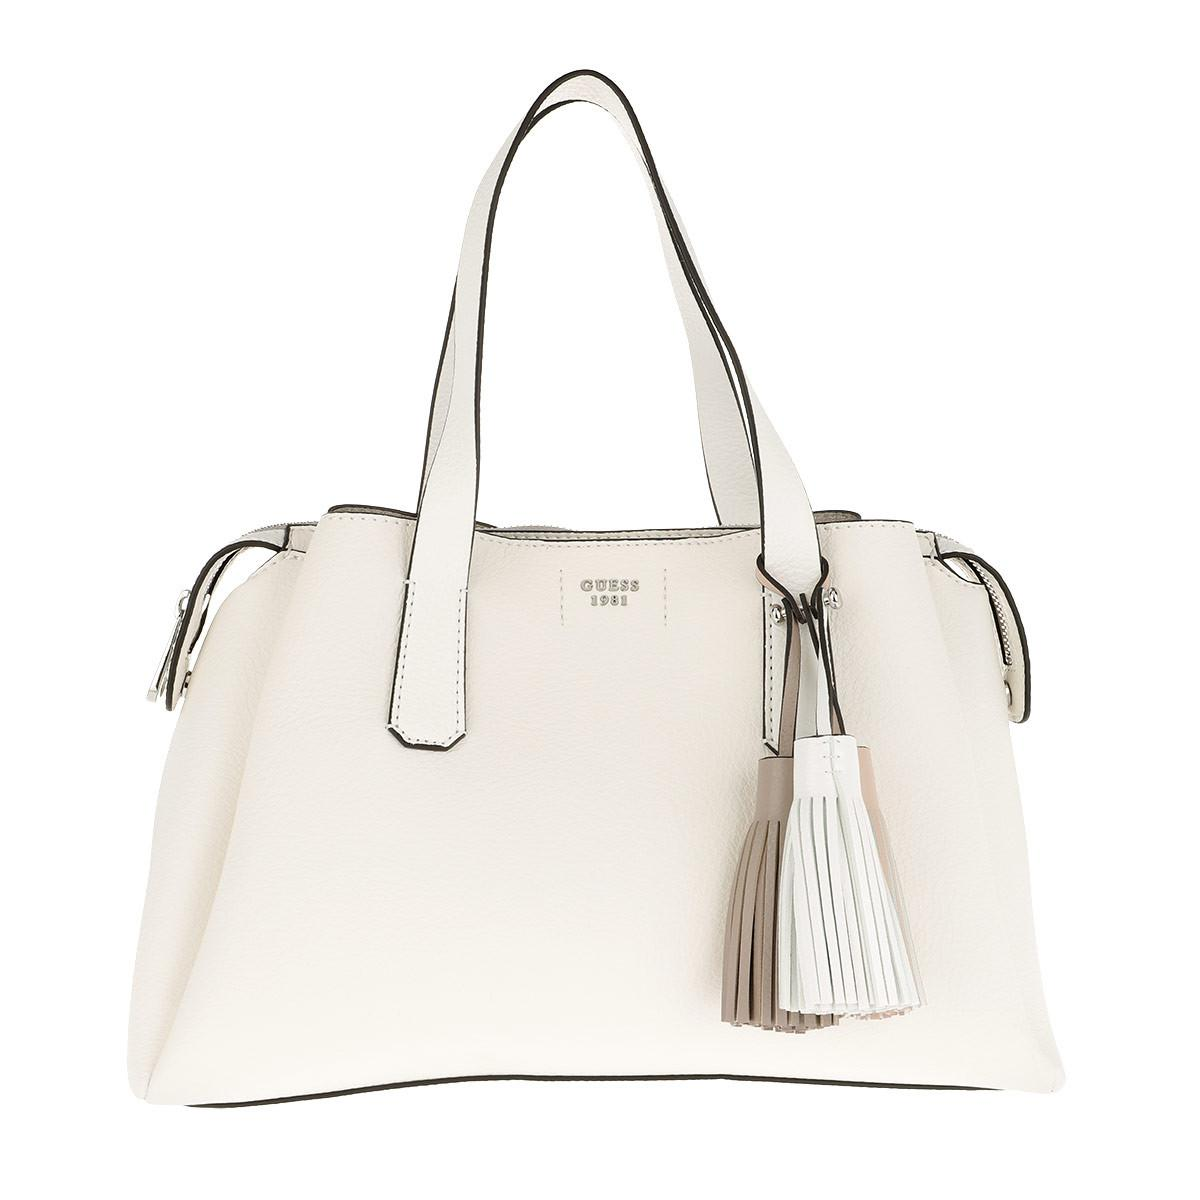 Guess Trudy Girlfriend Satchel Bag White in White - Lyst 6d989bf9ba33a